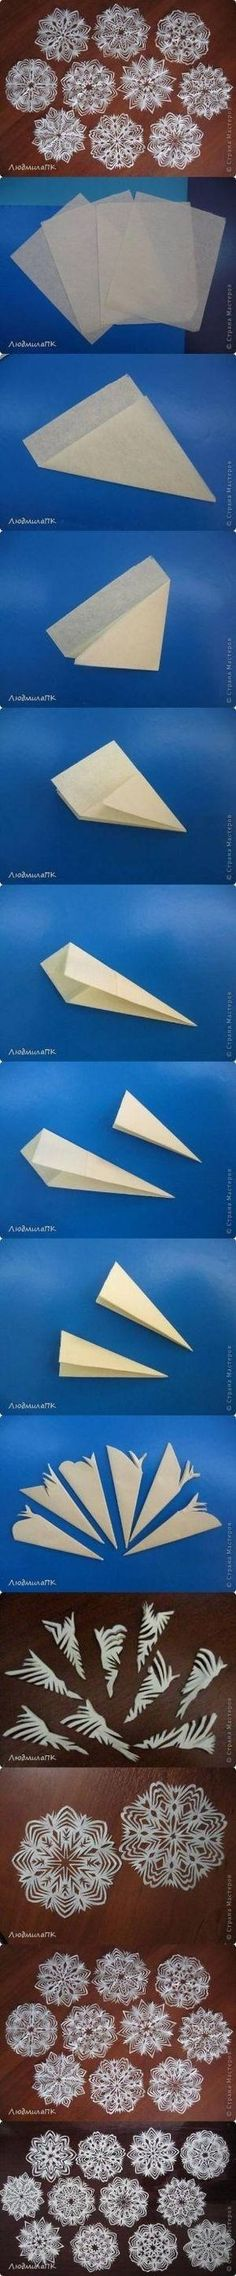 How to make Paper Snowflake Method step by step DIY tutorial instructions, How to, how to do, diy instructions, crafts, do it yourself, diy by Mary Smith fSesz by therese